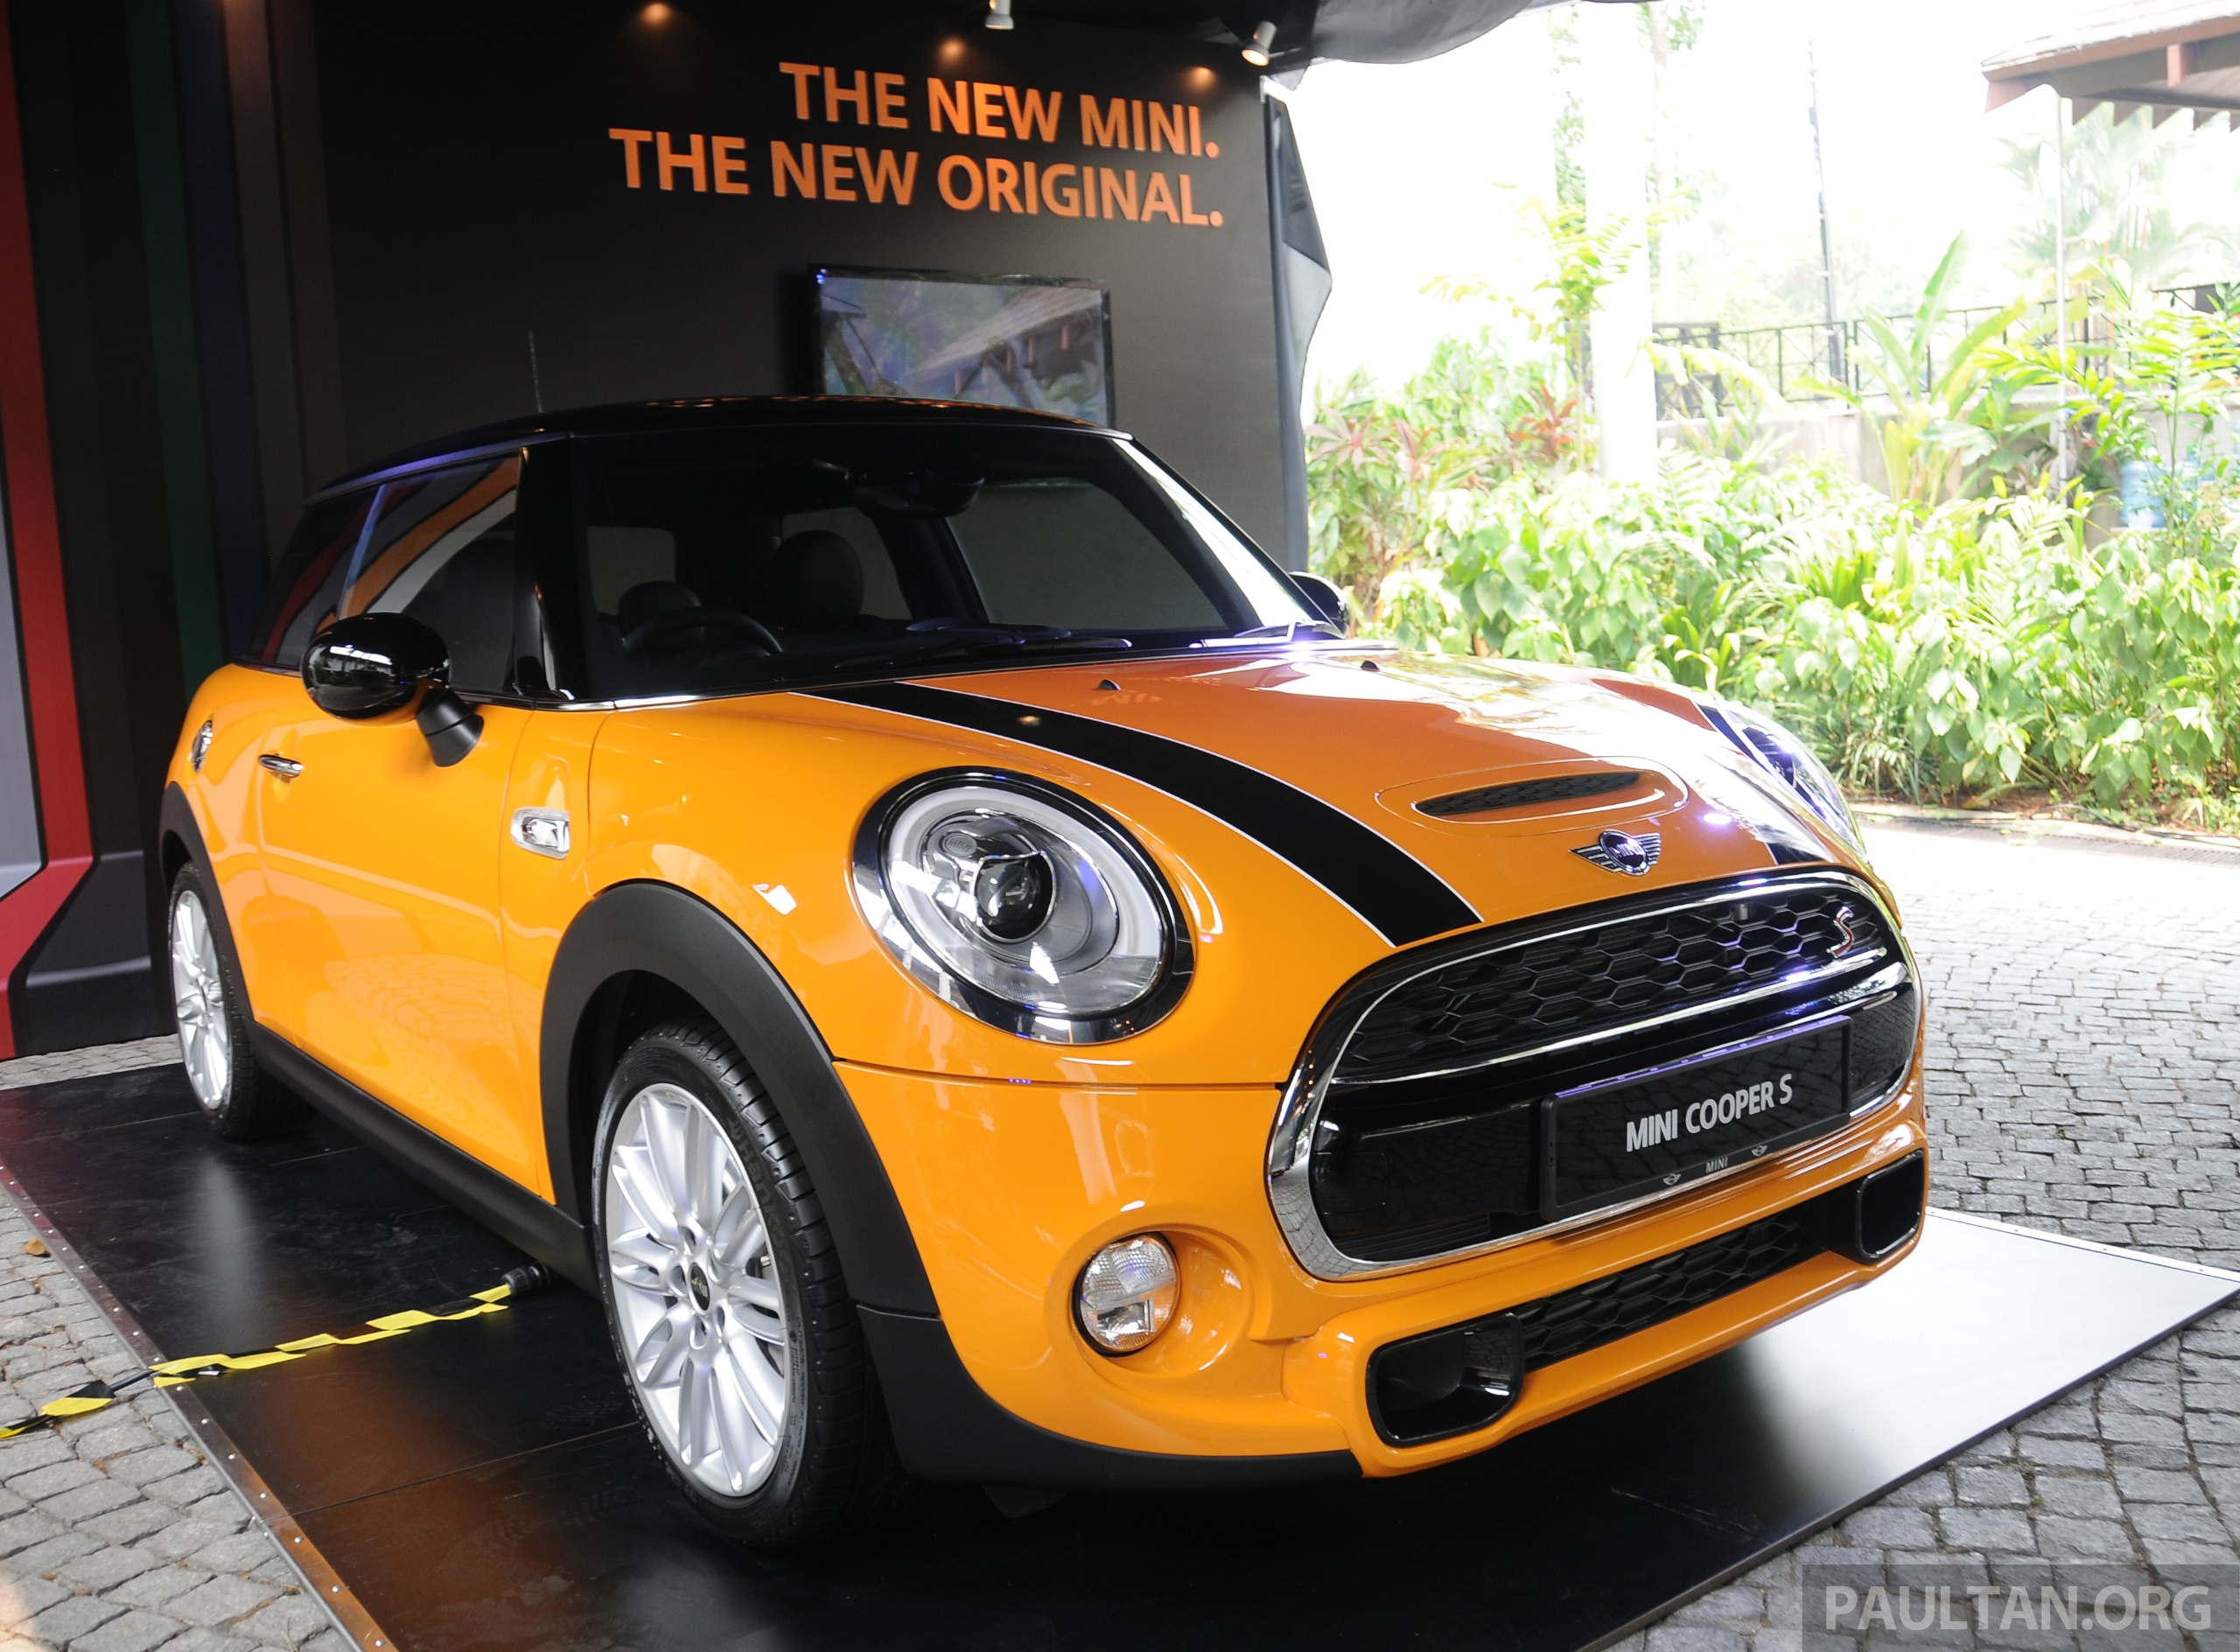 f56 mini cooper cooper s launched rm179k 249k. Black Bedroom Furniture Sets. Home Design Ideas